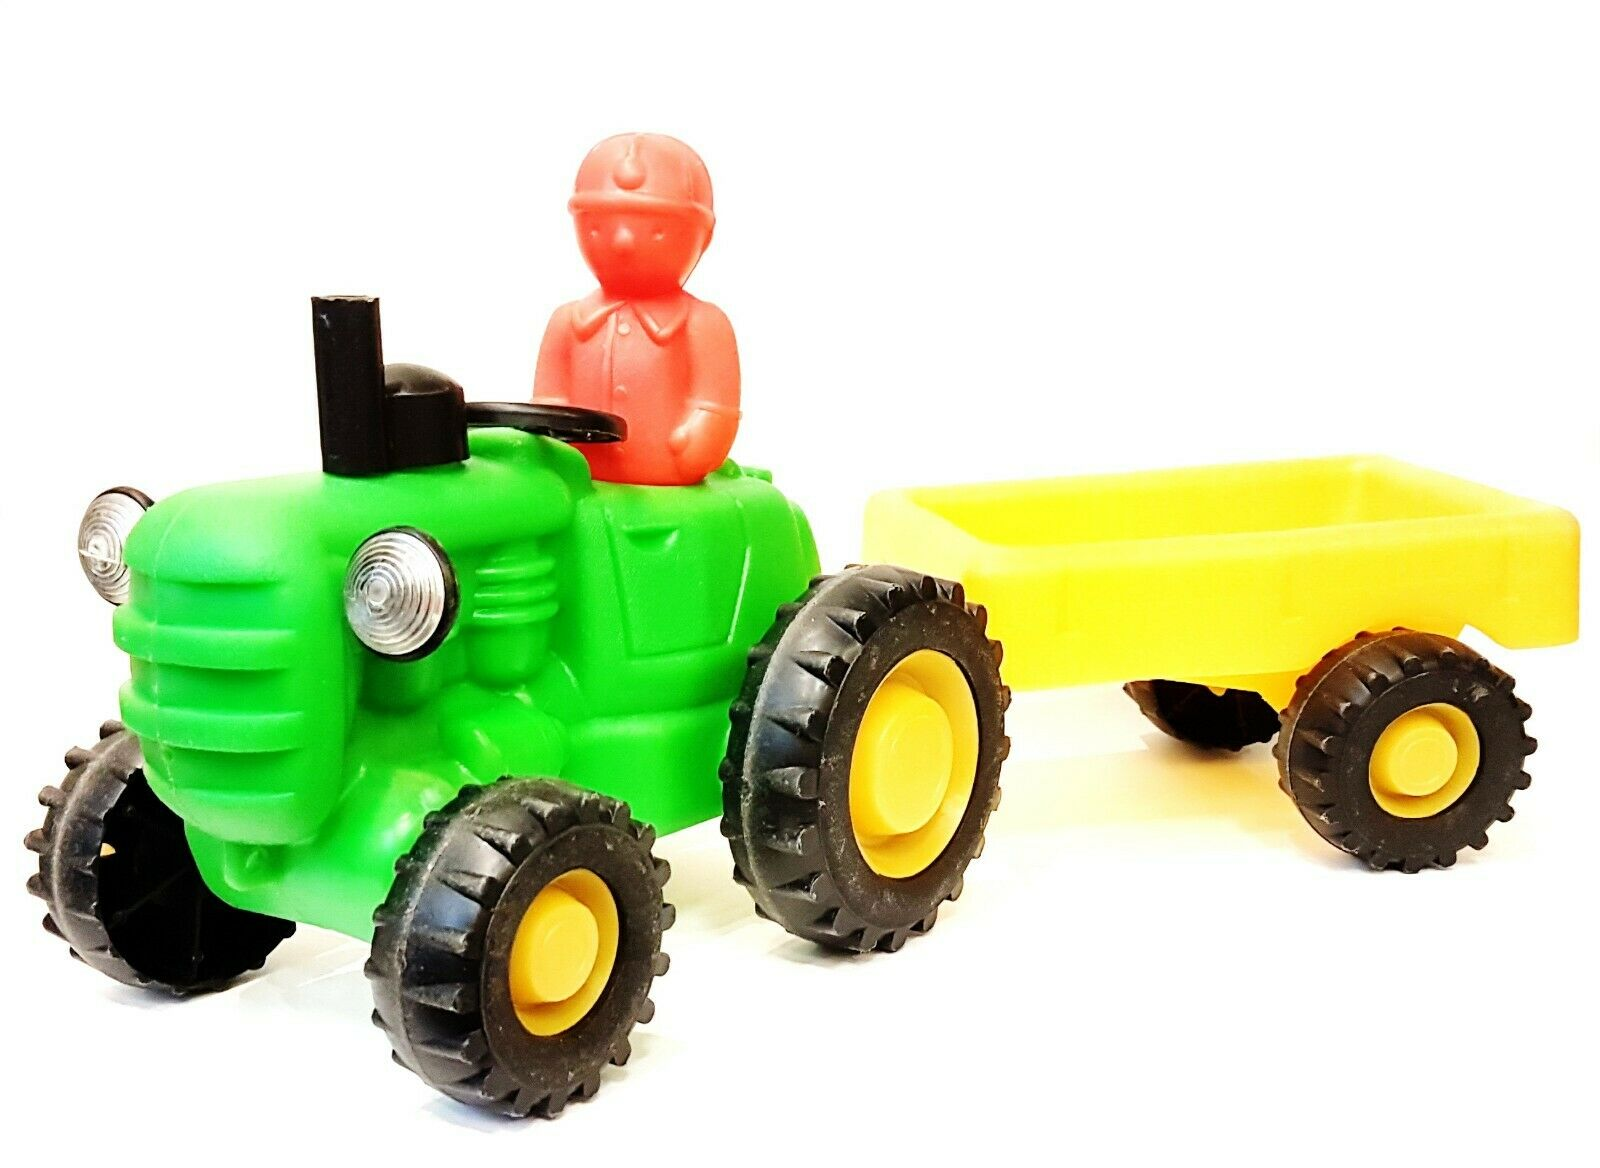 Vintage USSR Toy Tractor with Trailer and Driver Polyethylene 1970s